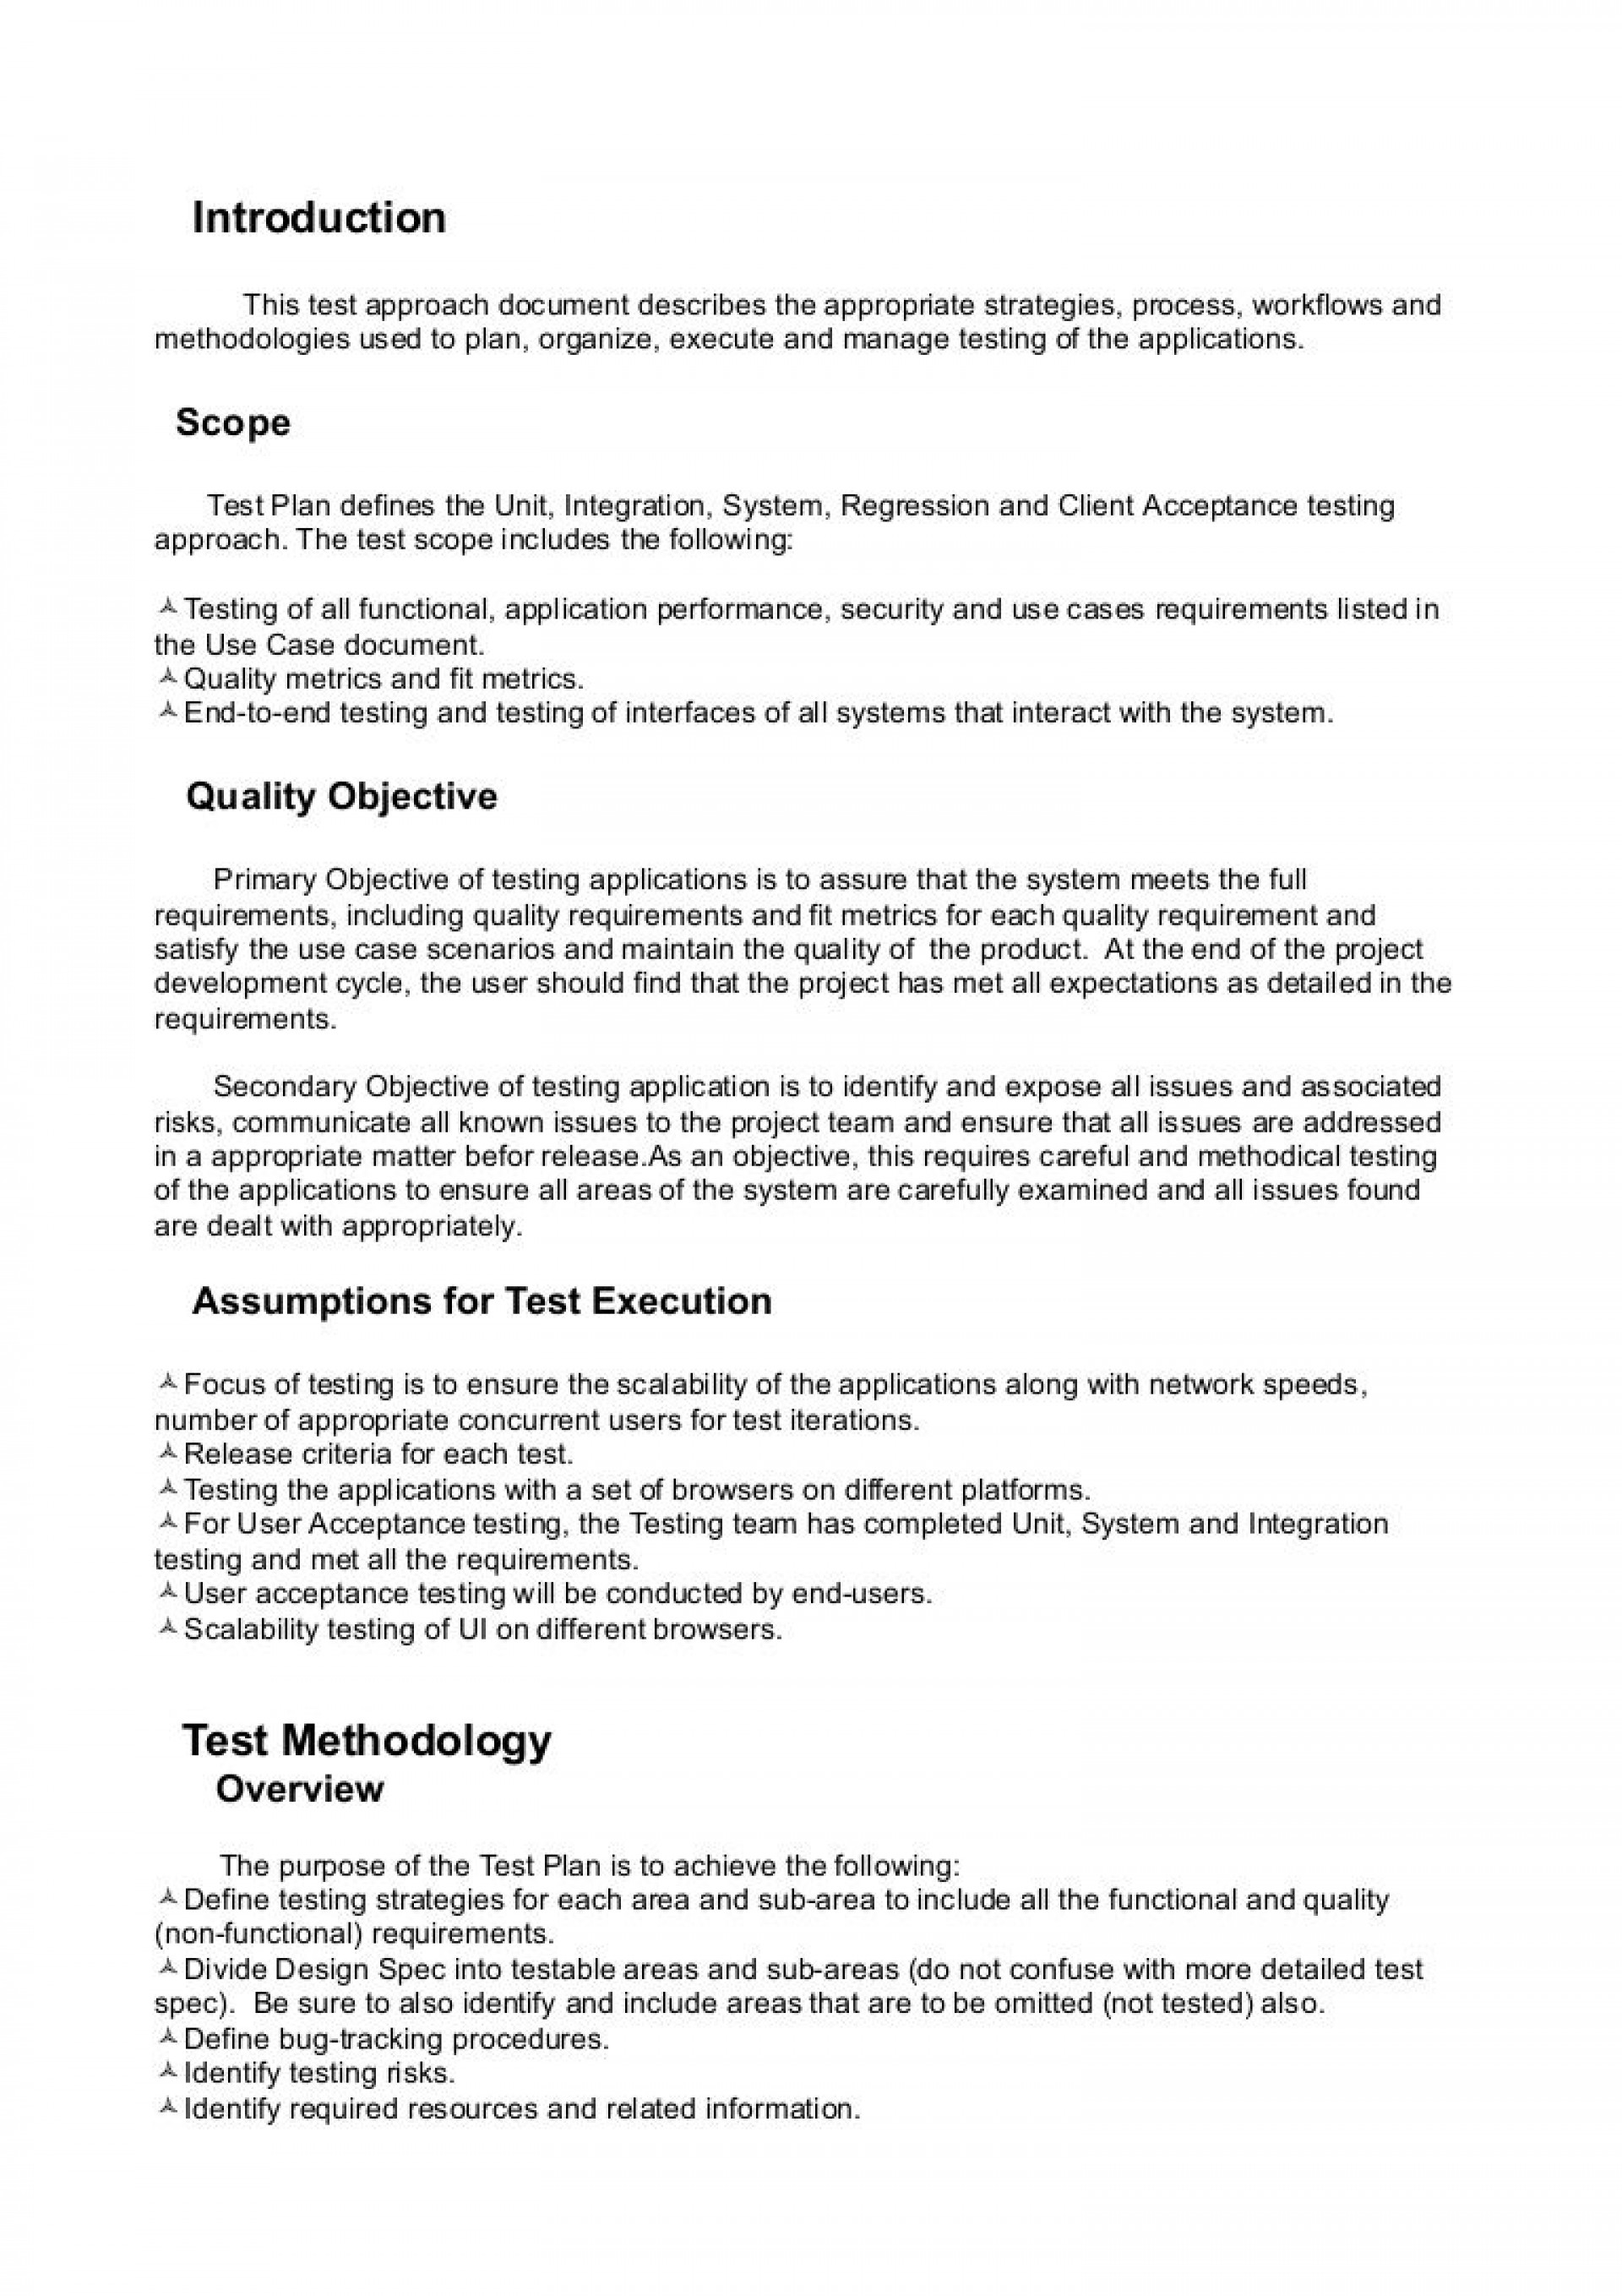 004 Awesome Simple Application Test Plan Template Inspiration  Word Software Excel1920